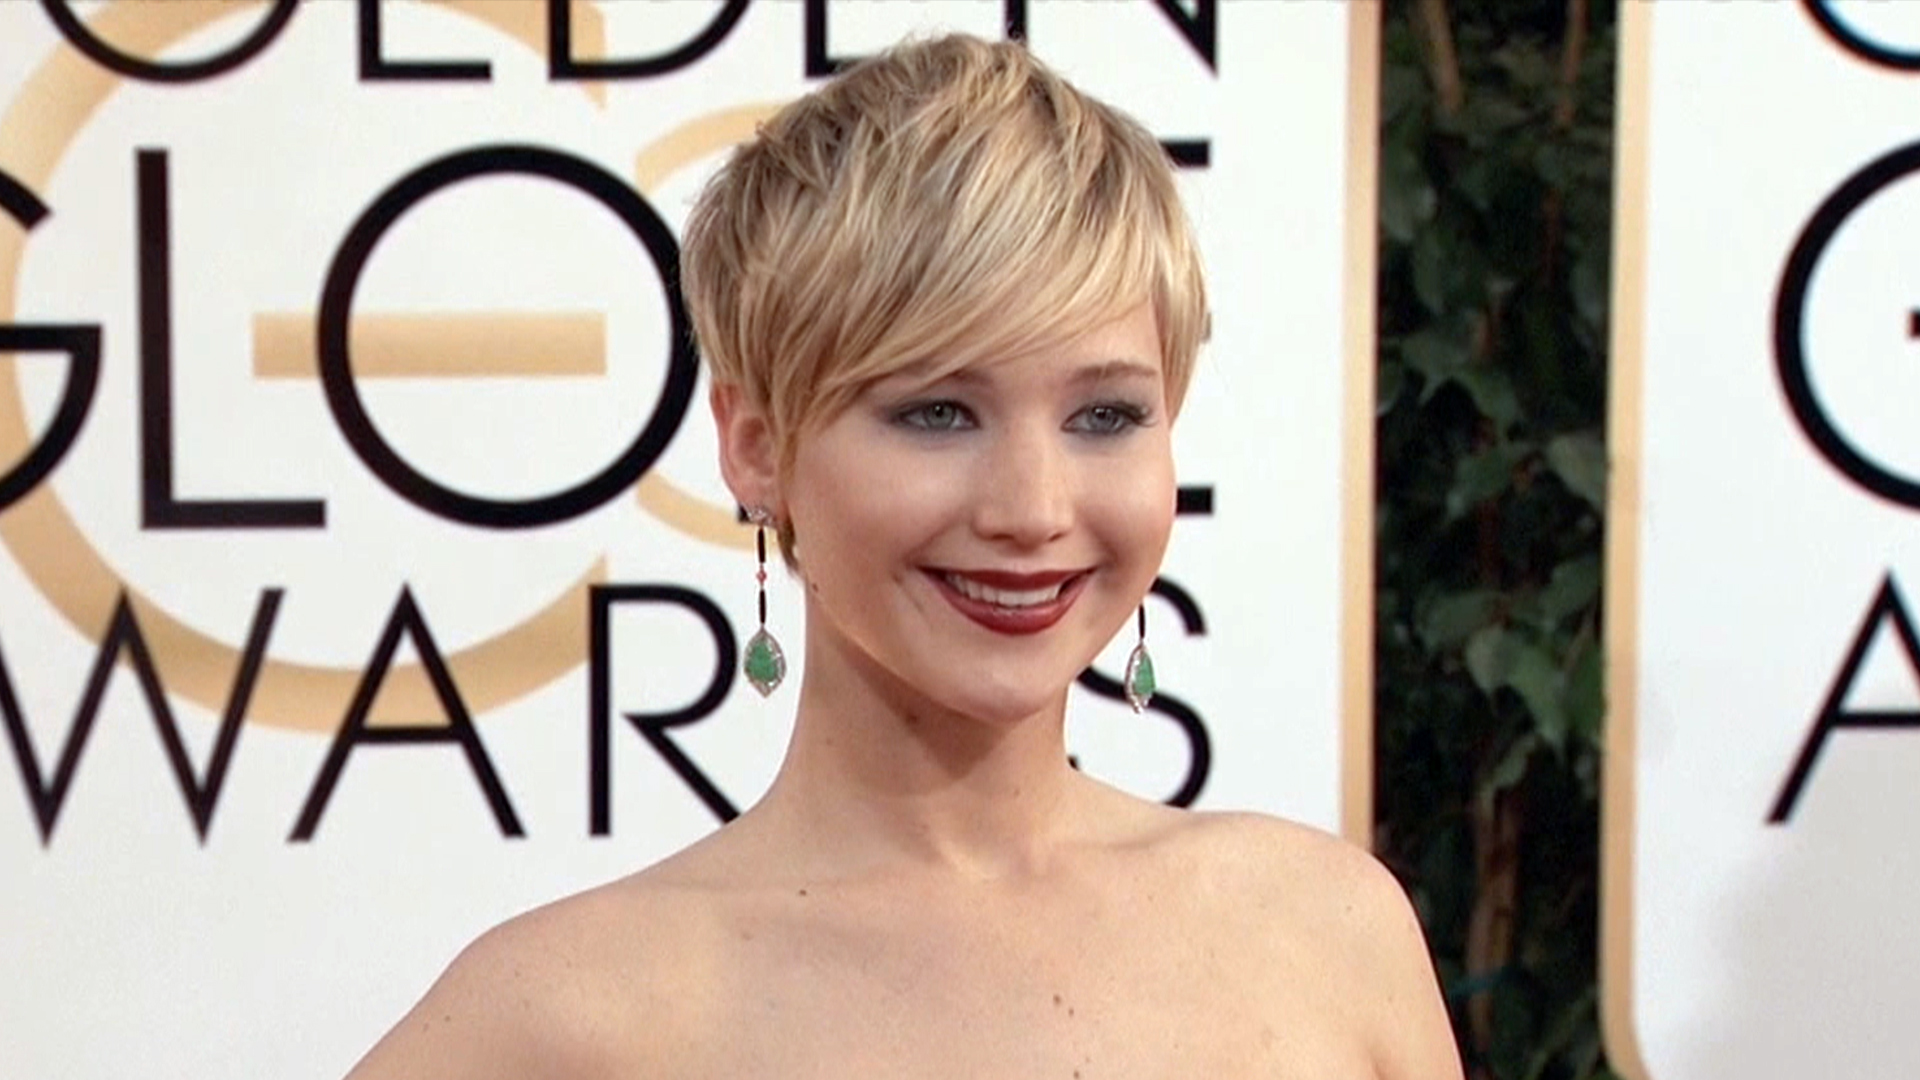 Celebrity Nude Photo Hacking: Should You Be Worried?